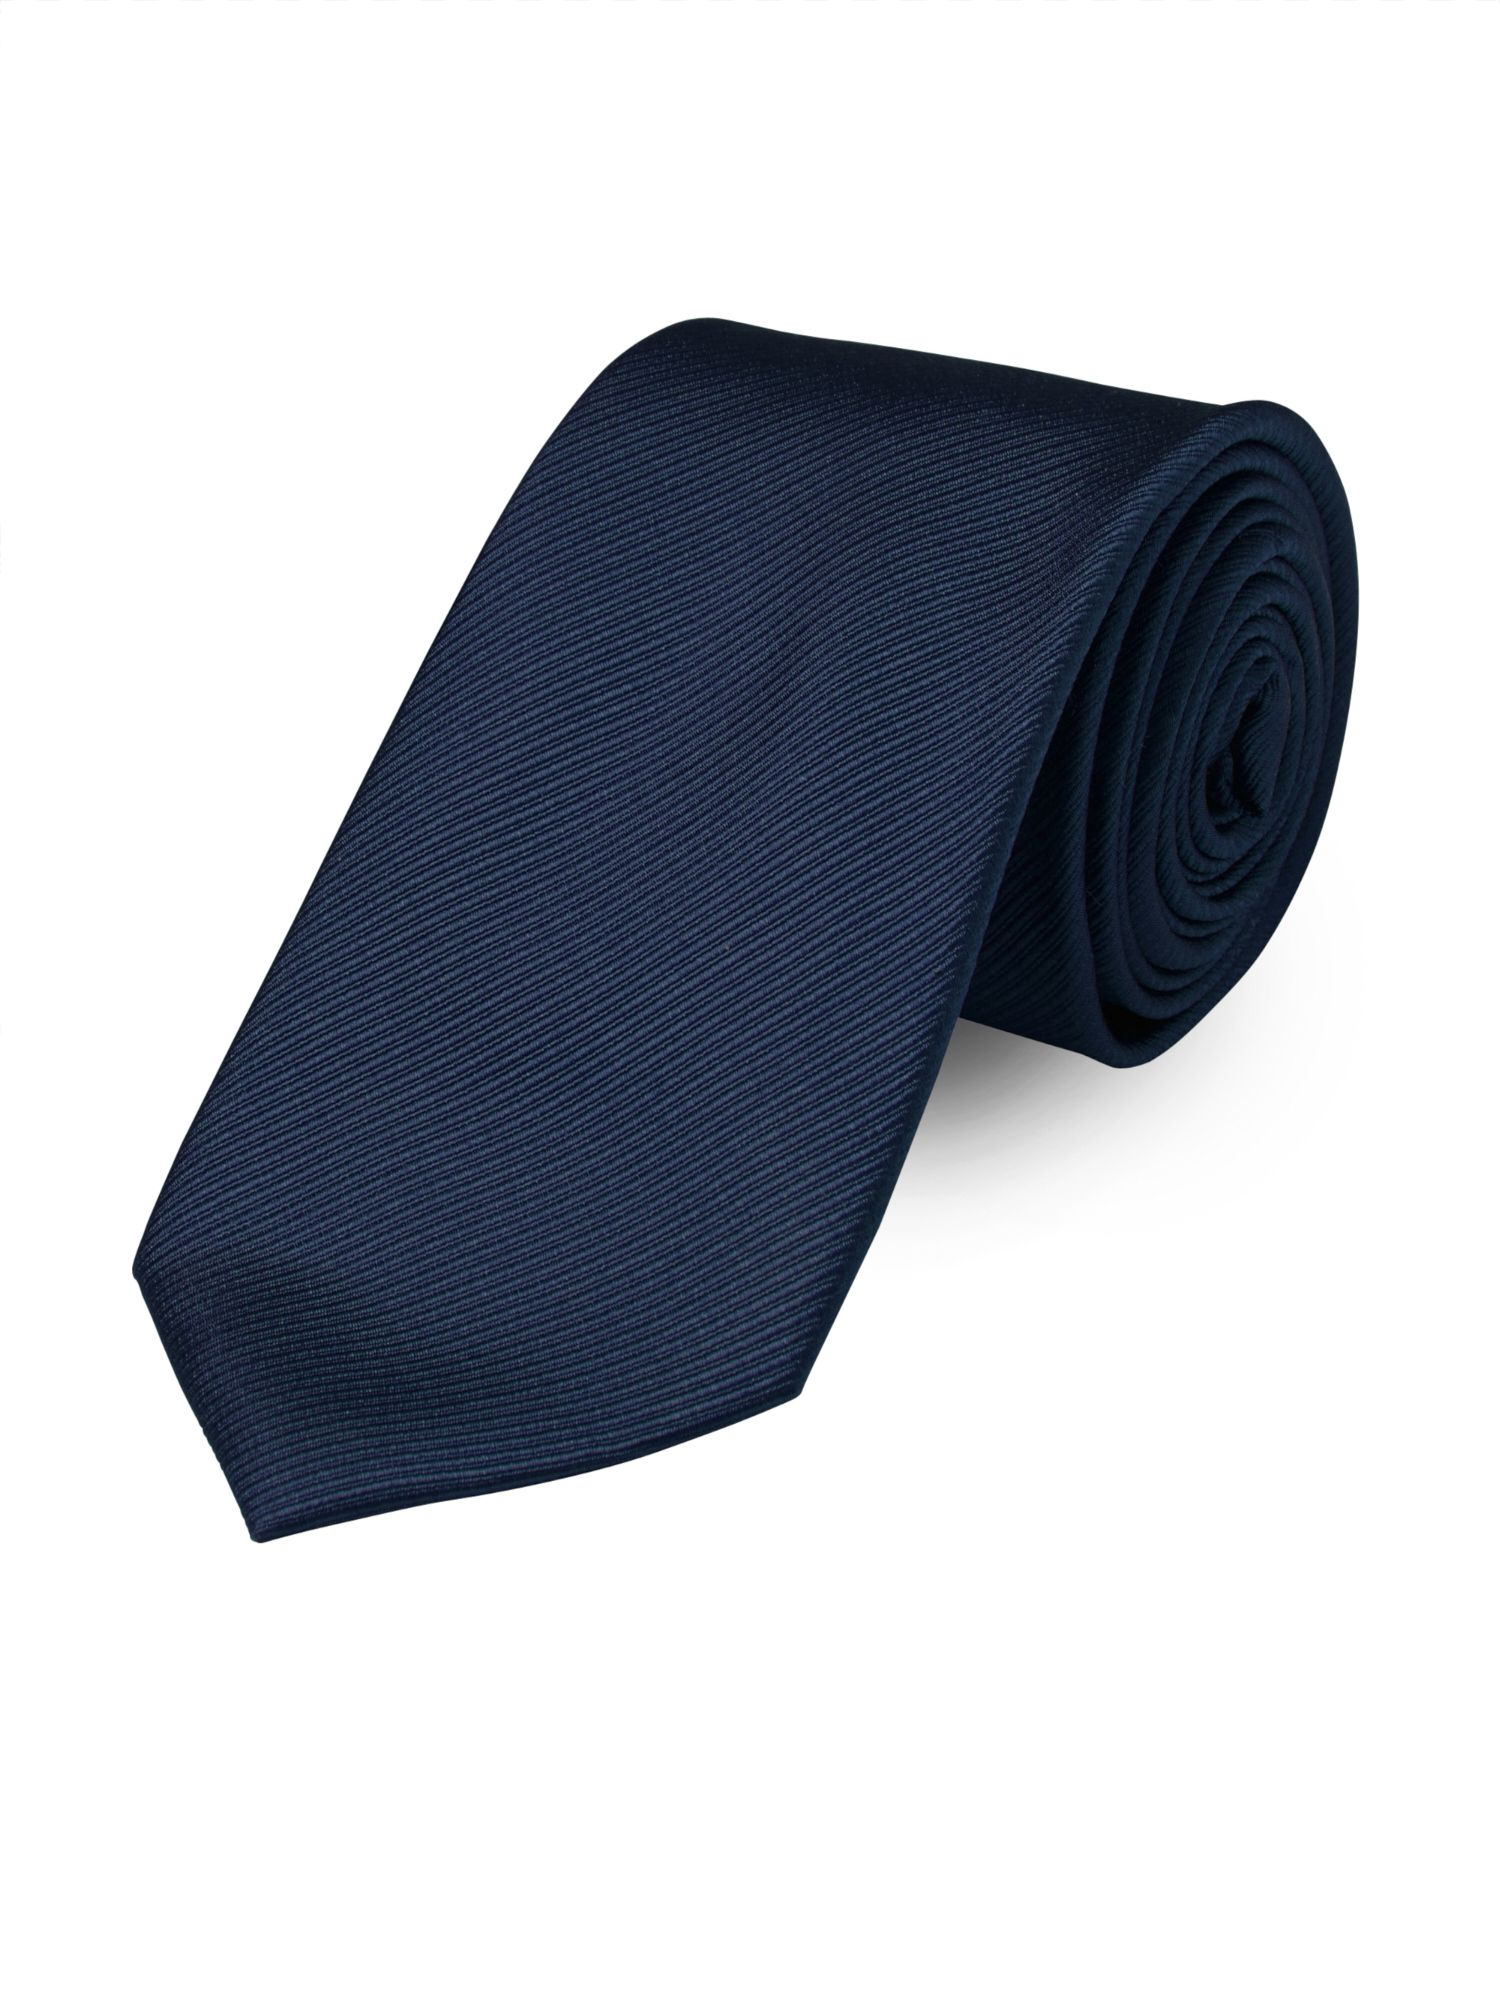 Paul Costelloe Plain Twill French Navy Tie Navy